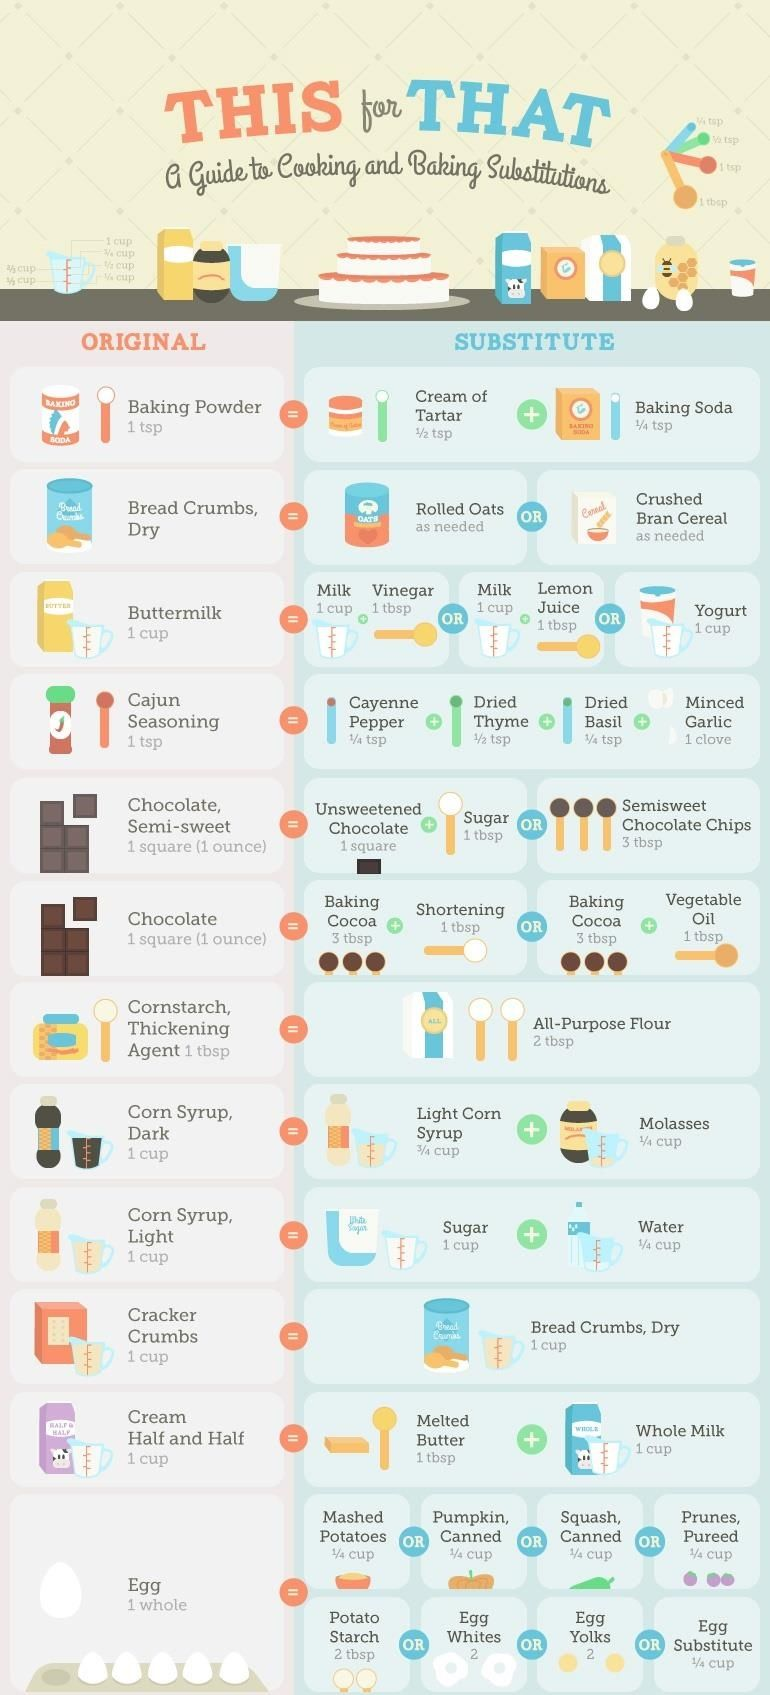 Guide to Cooking and Baking